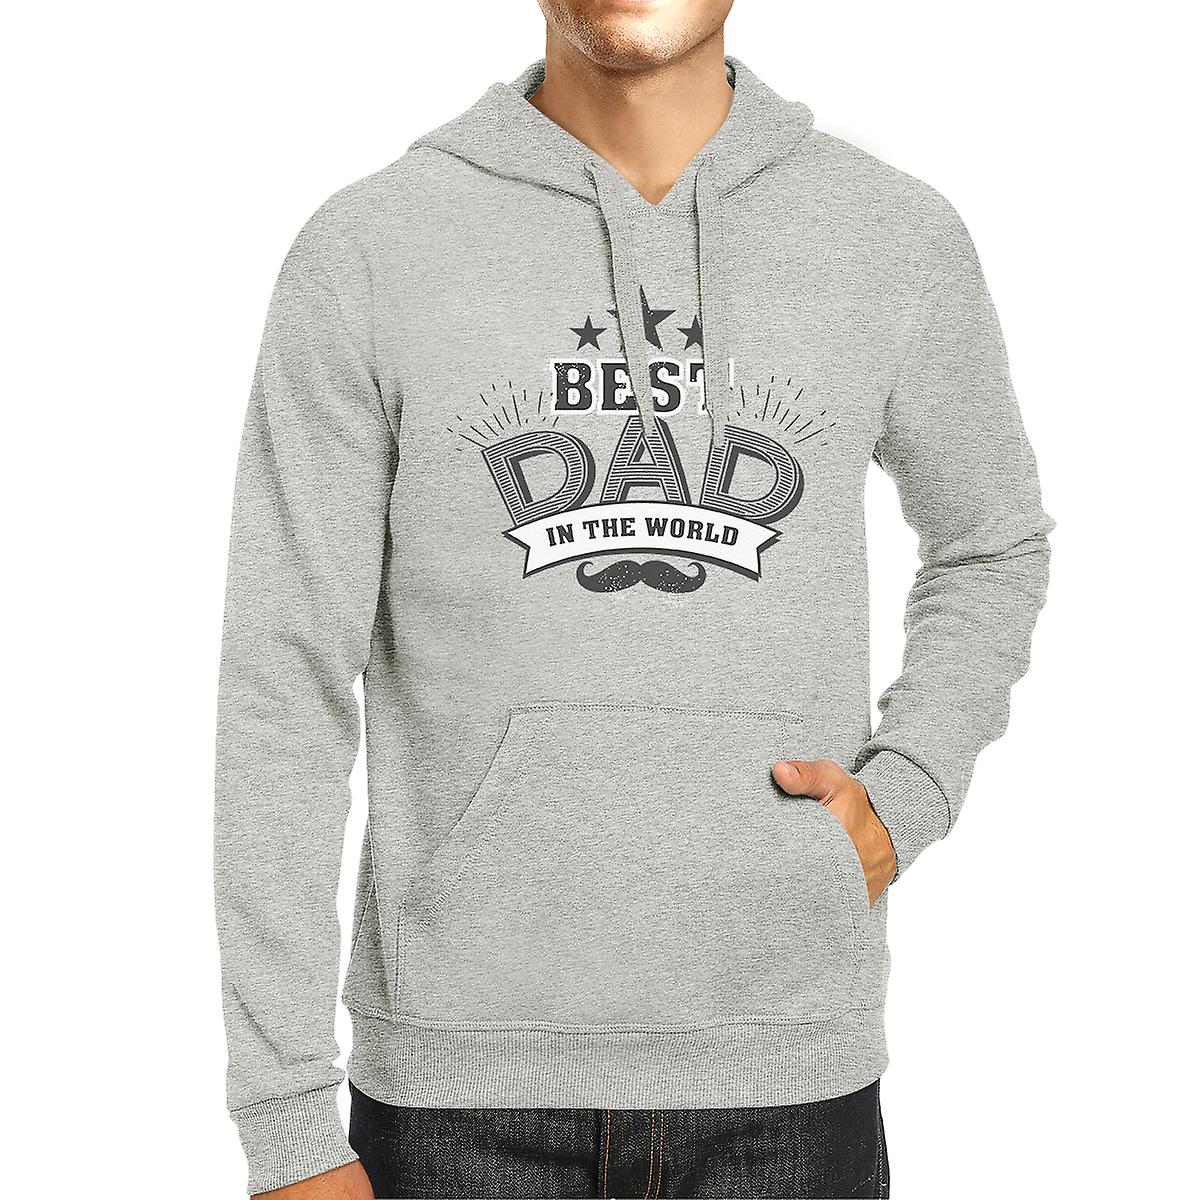 Shop for Best In The World hoodies & sweatshirts from Zazzle. Choose a design from our huge selection of images, artwork, & photos.